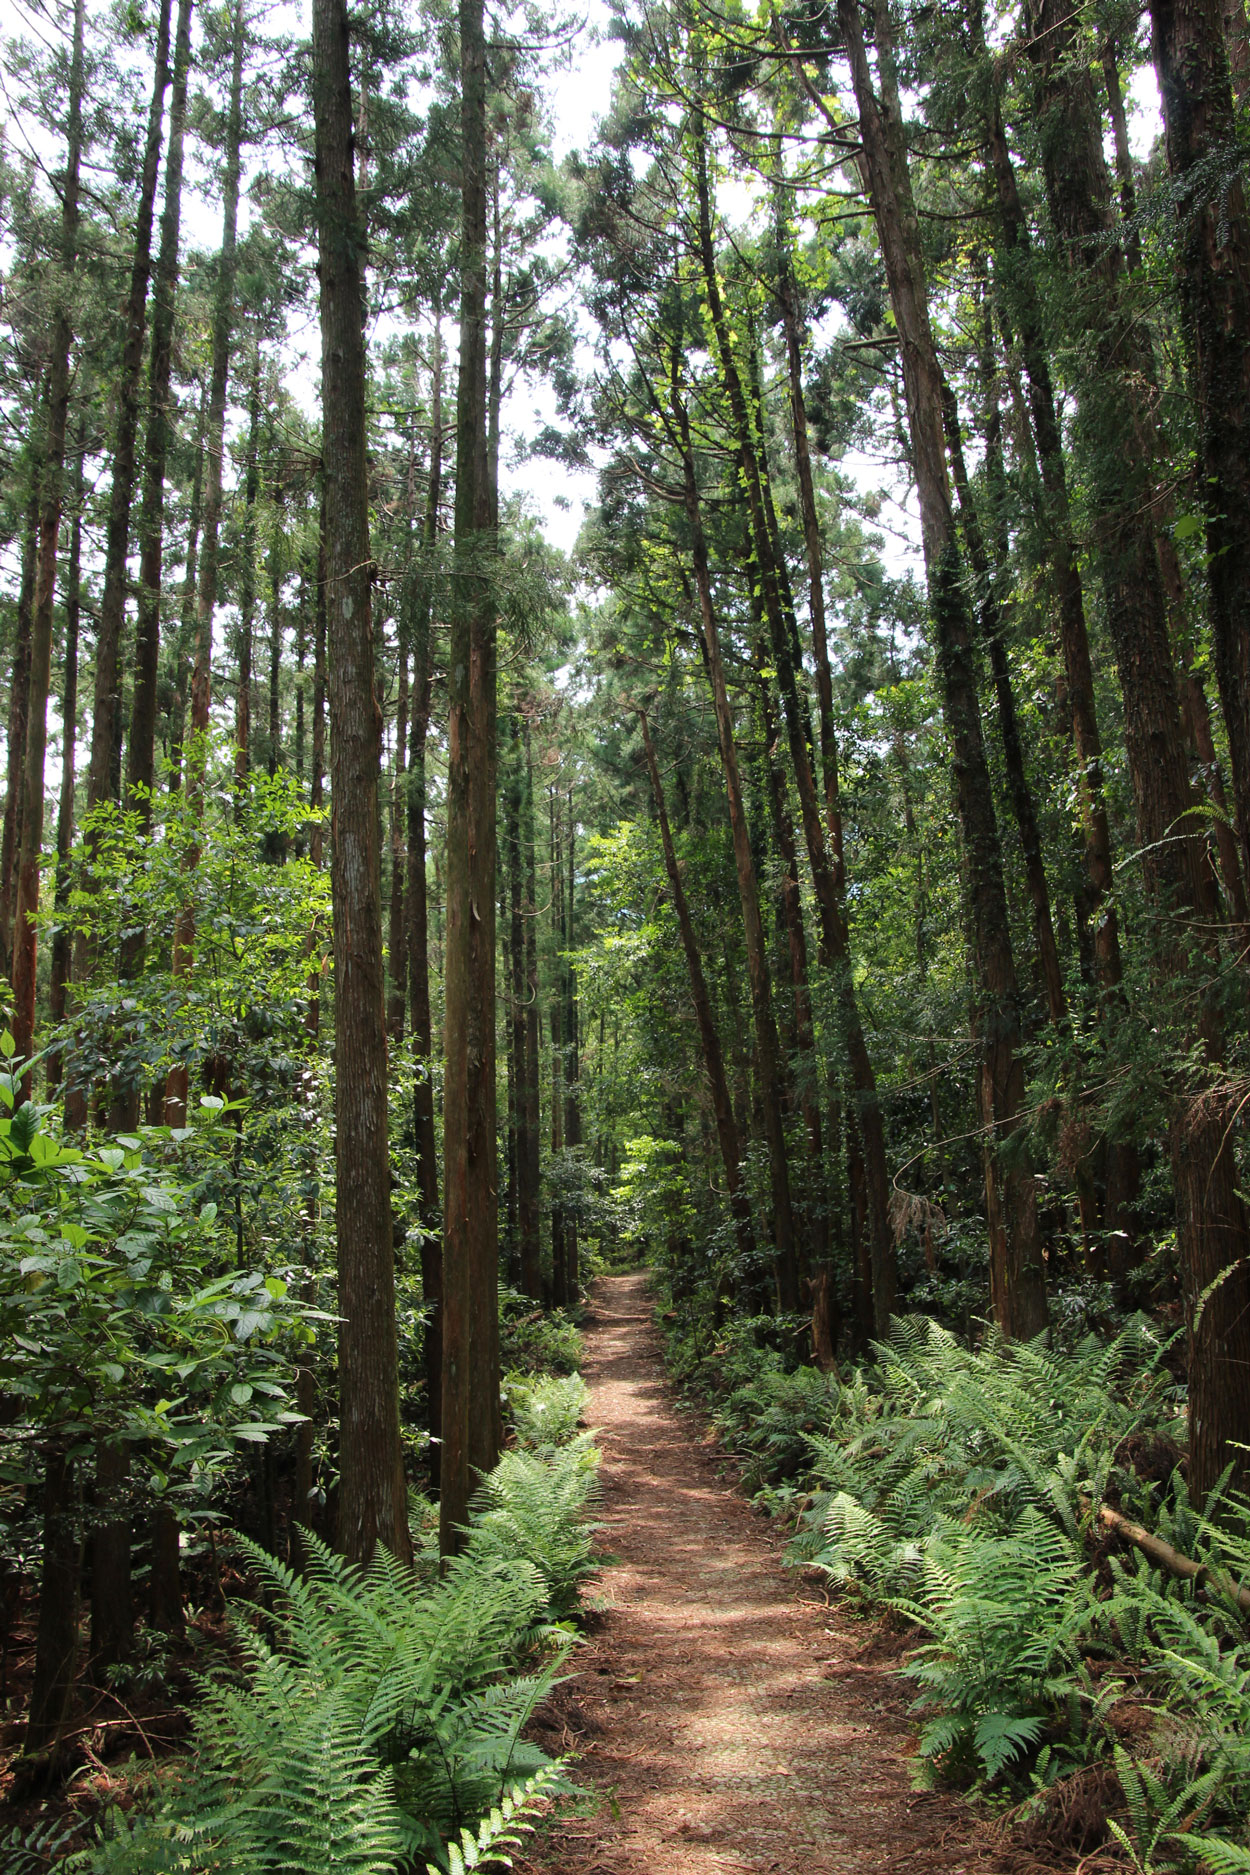 Path in Yakushima forest in Japan.